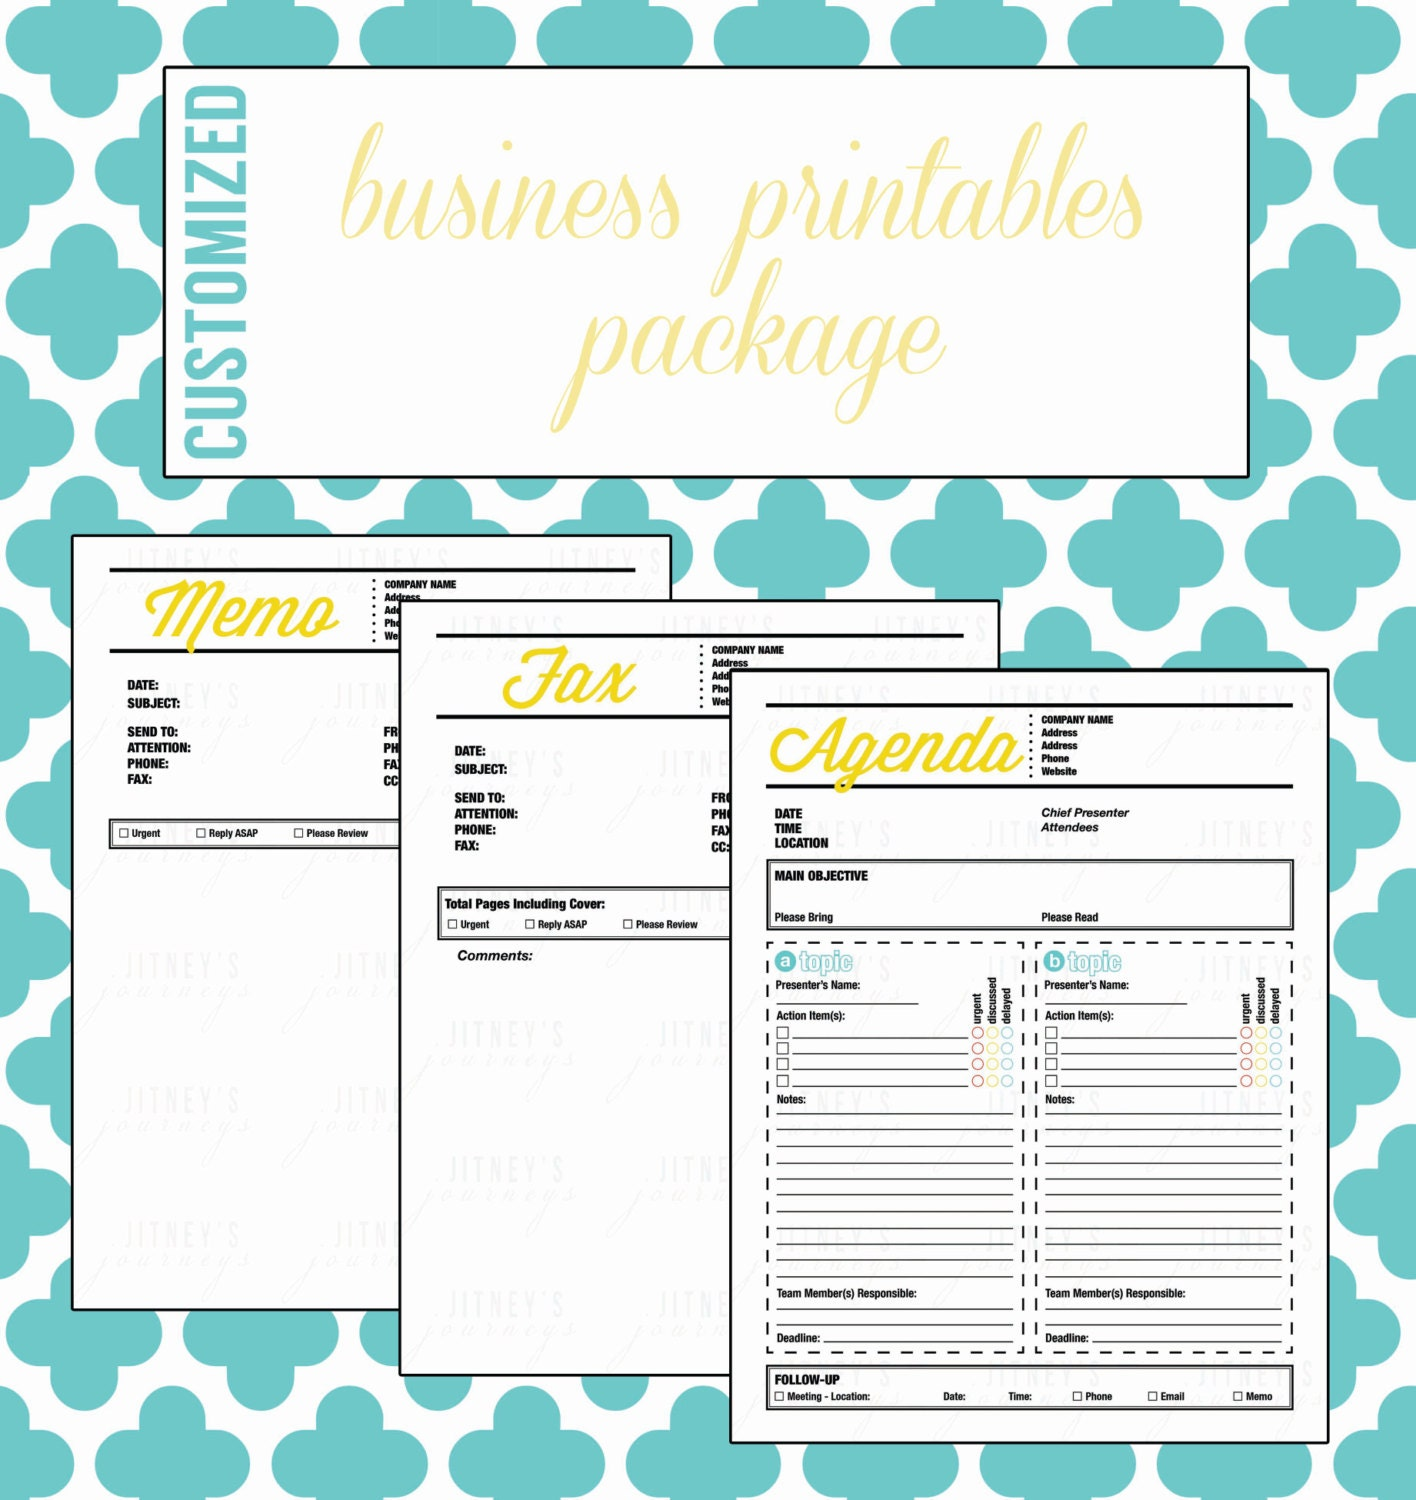 Lovely Etsy Shop : Business Printables Package {Customized} Inside Free Business Printables